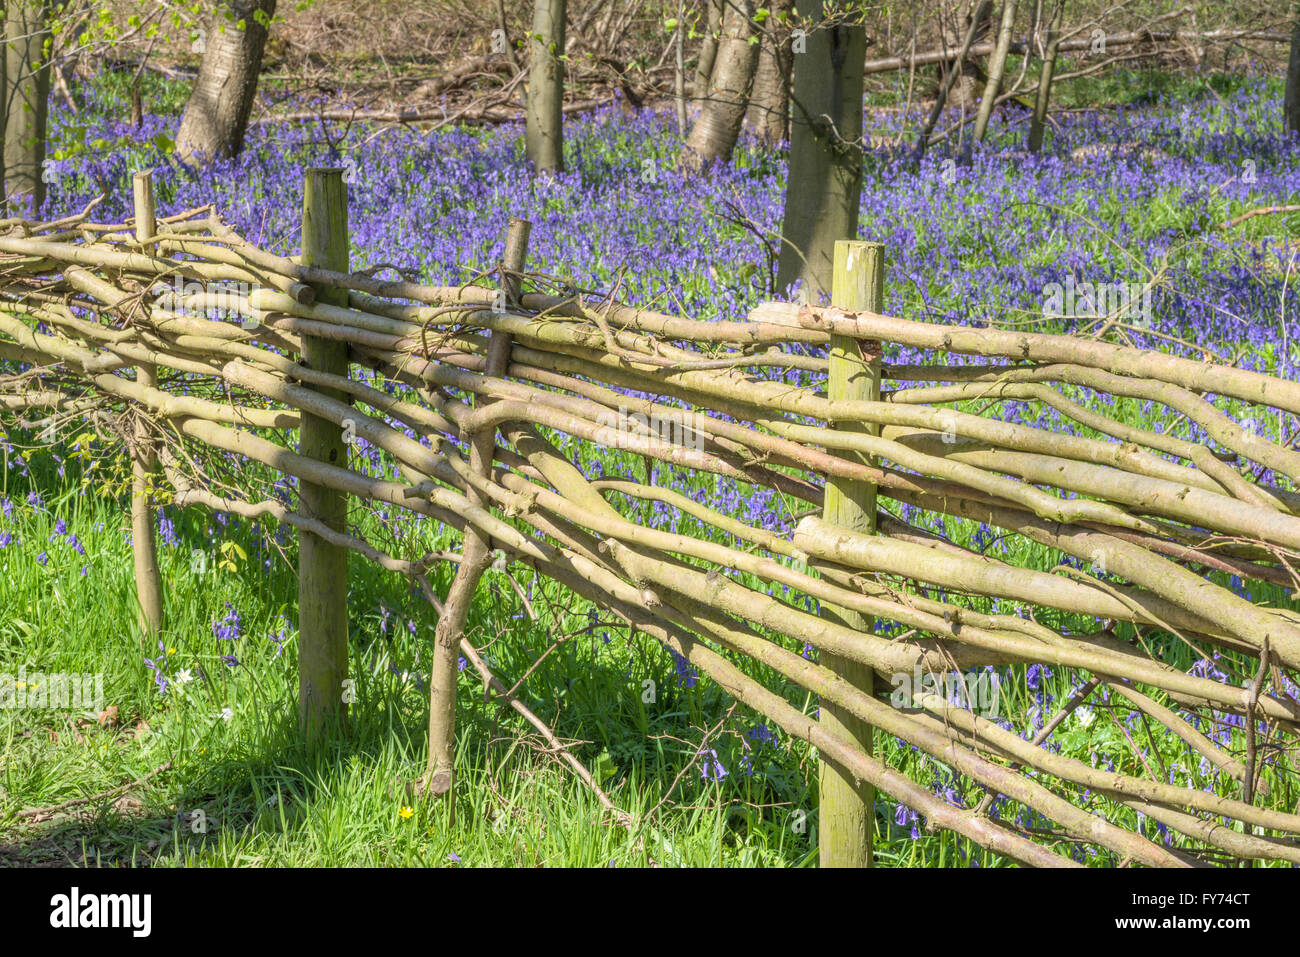 Wicker fence marking boundary of an ancient bluebell wood - Stock Image